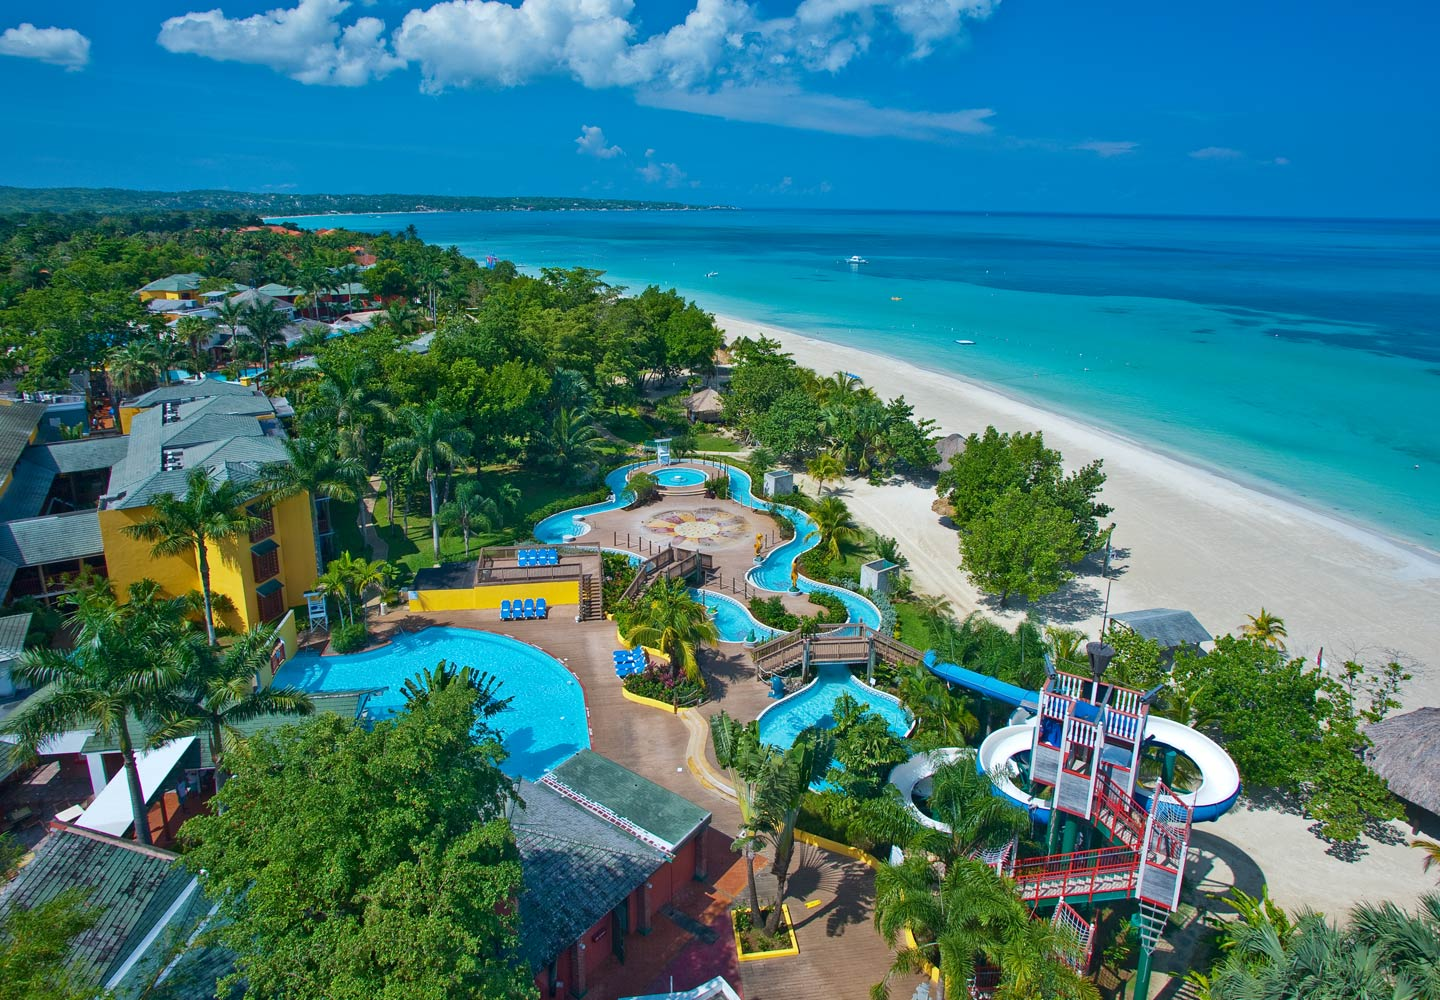 SANDALS Negril: All-Inclusive Resort on 7-Mile Beach, Jamaica